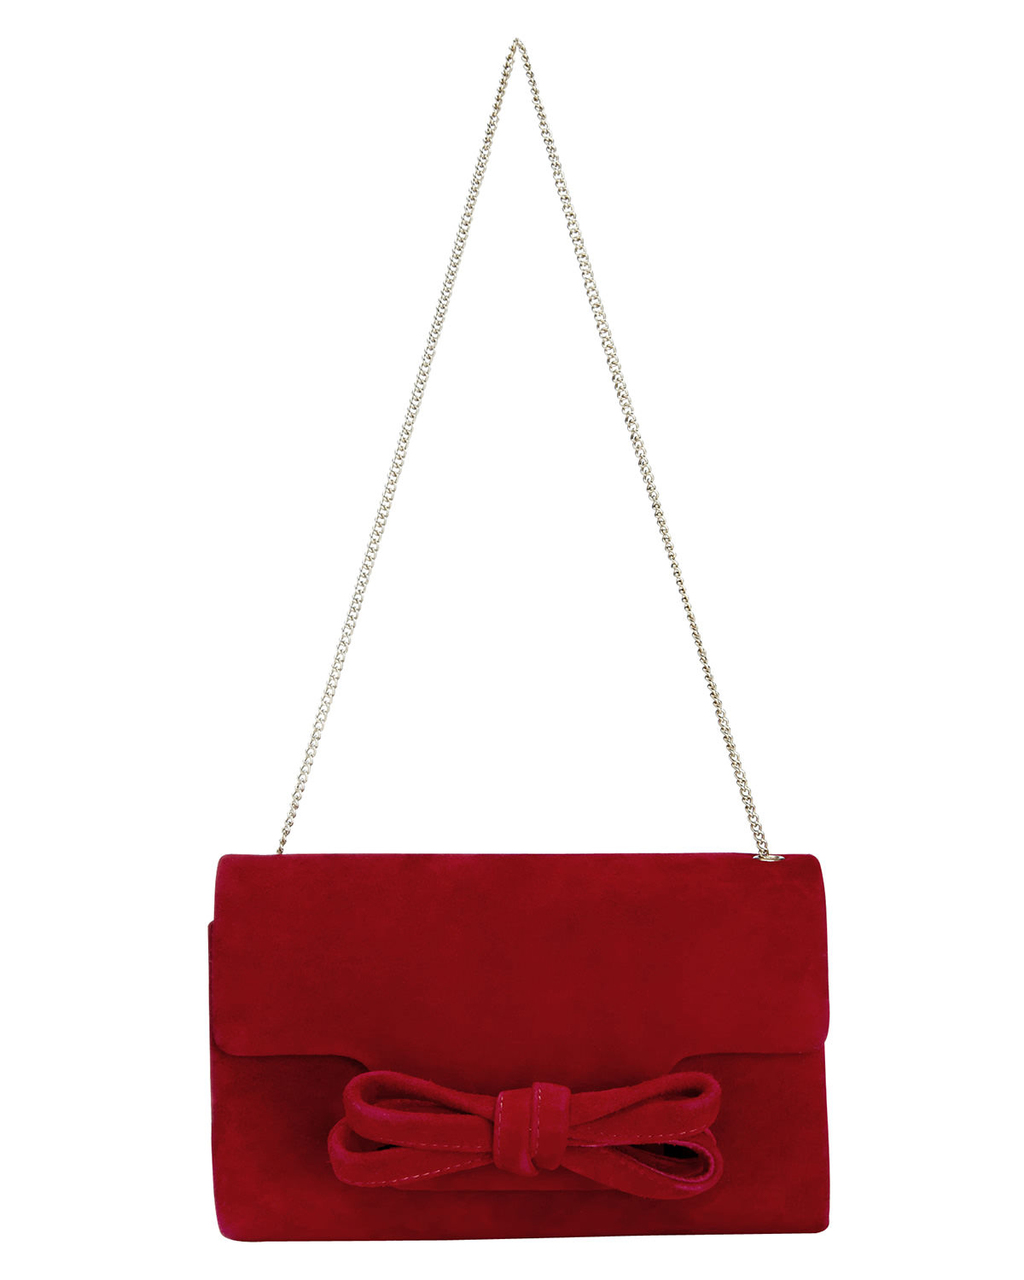 Elena Suede Bow Clutch Bag - predominant colour: burgundy; occasions: evening, occasion; type of pattern: standard; style: clutch; length: handle; size: standard; material: suede; pattern: plain; finish: plain; embellishment: bow; season: s/s 2016